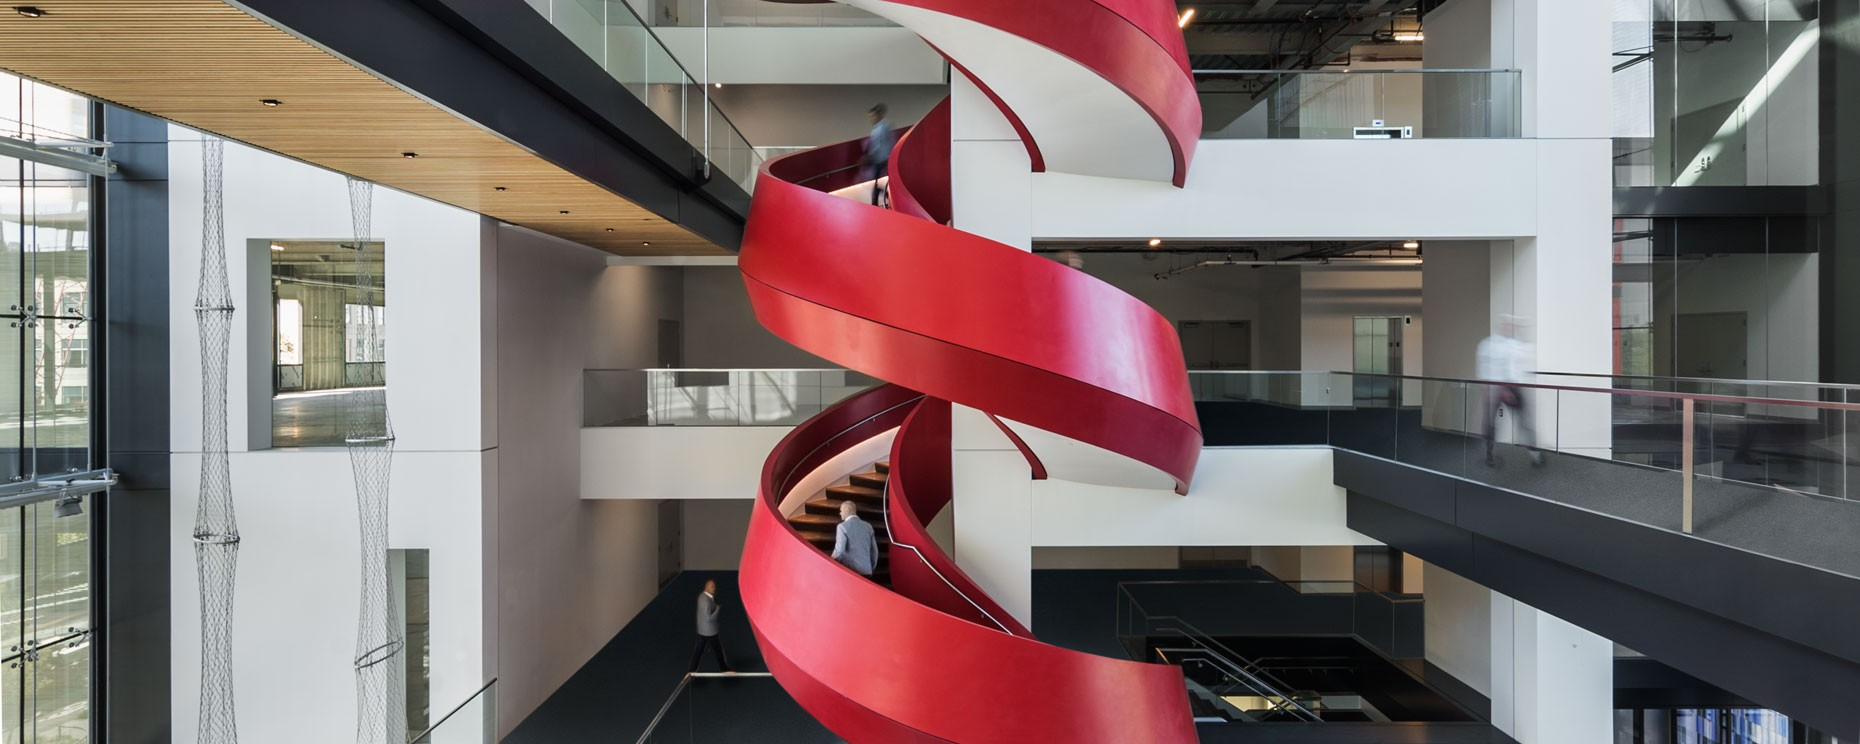 Ariad Pharmaceuticals, 75/125 Binney Street, Boston. Thermoformed solid surface spiral staircasewith compound angles  Material: Krion Architecture: Payette General Contractor: Gilbane